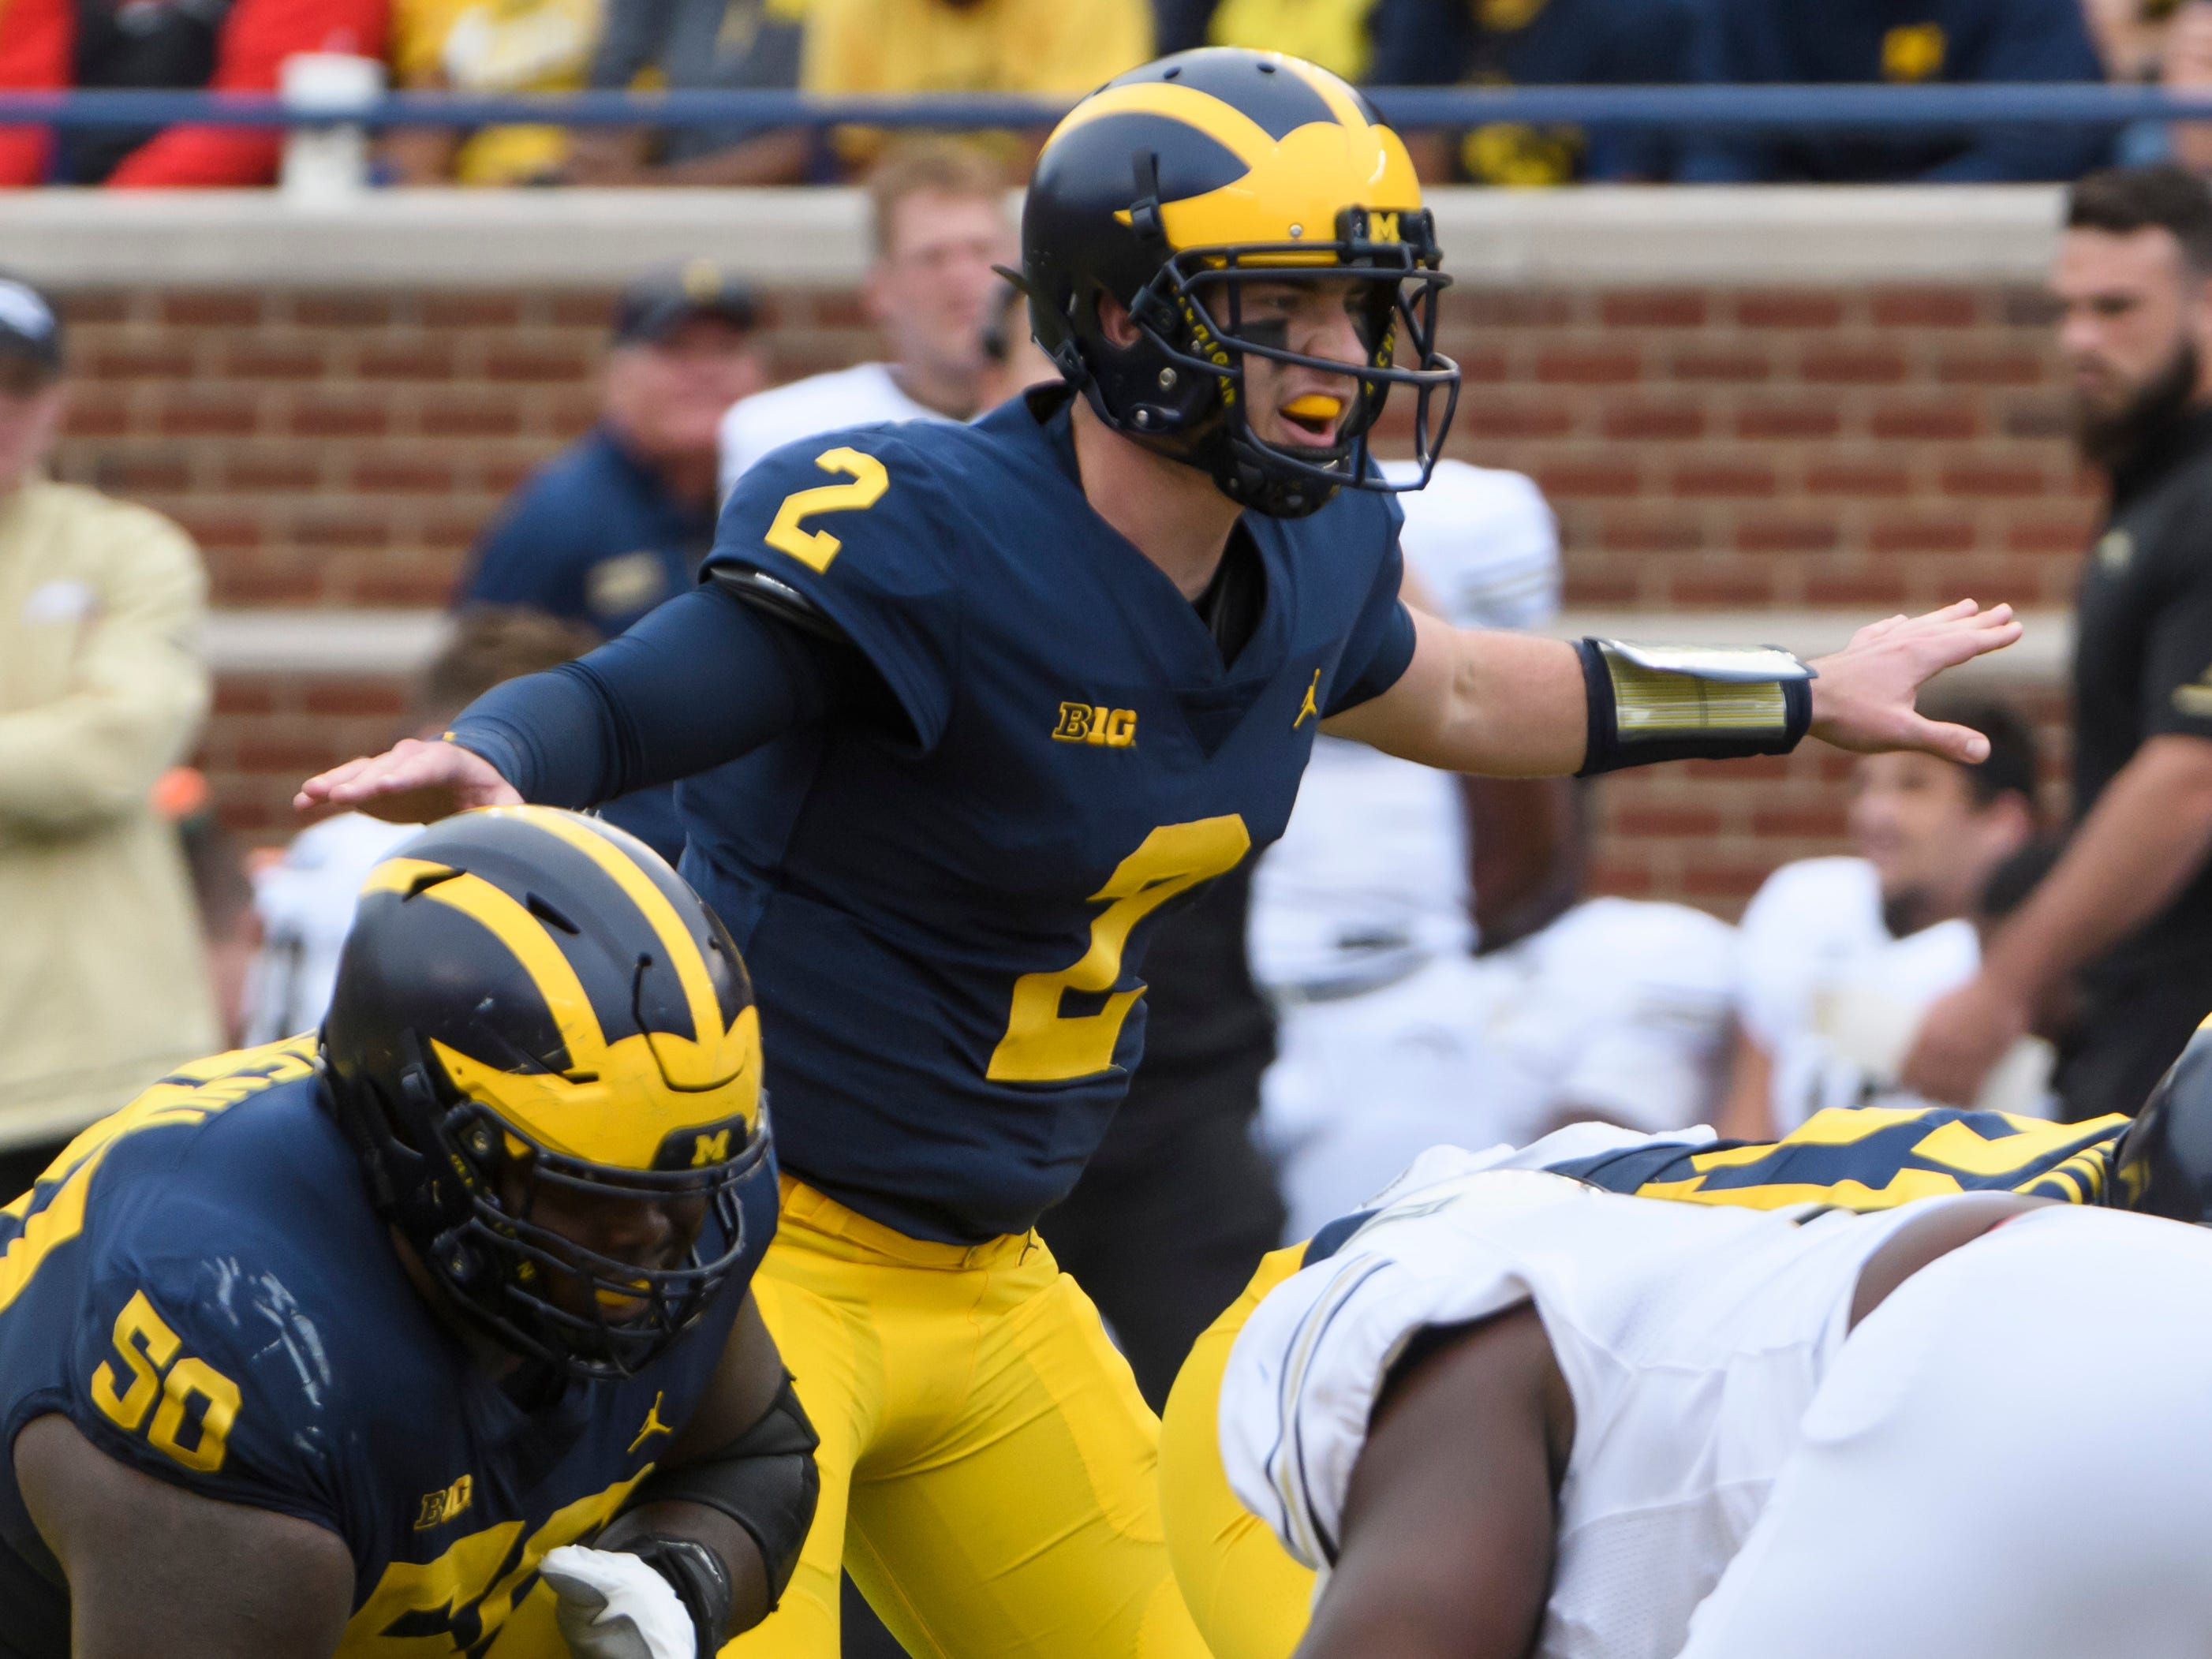 OFFENSE QUARTERBACK: Shea Patterson – Patterson started every game last season after transferring from Ole Miss. He completed 64.6 percent of his passes for 2,600 yards and 22 touchdowns against seven interceptions. He should shine brighter in offensive coordinator Josh Gattis' offense.